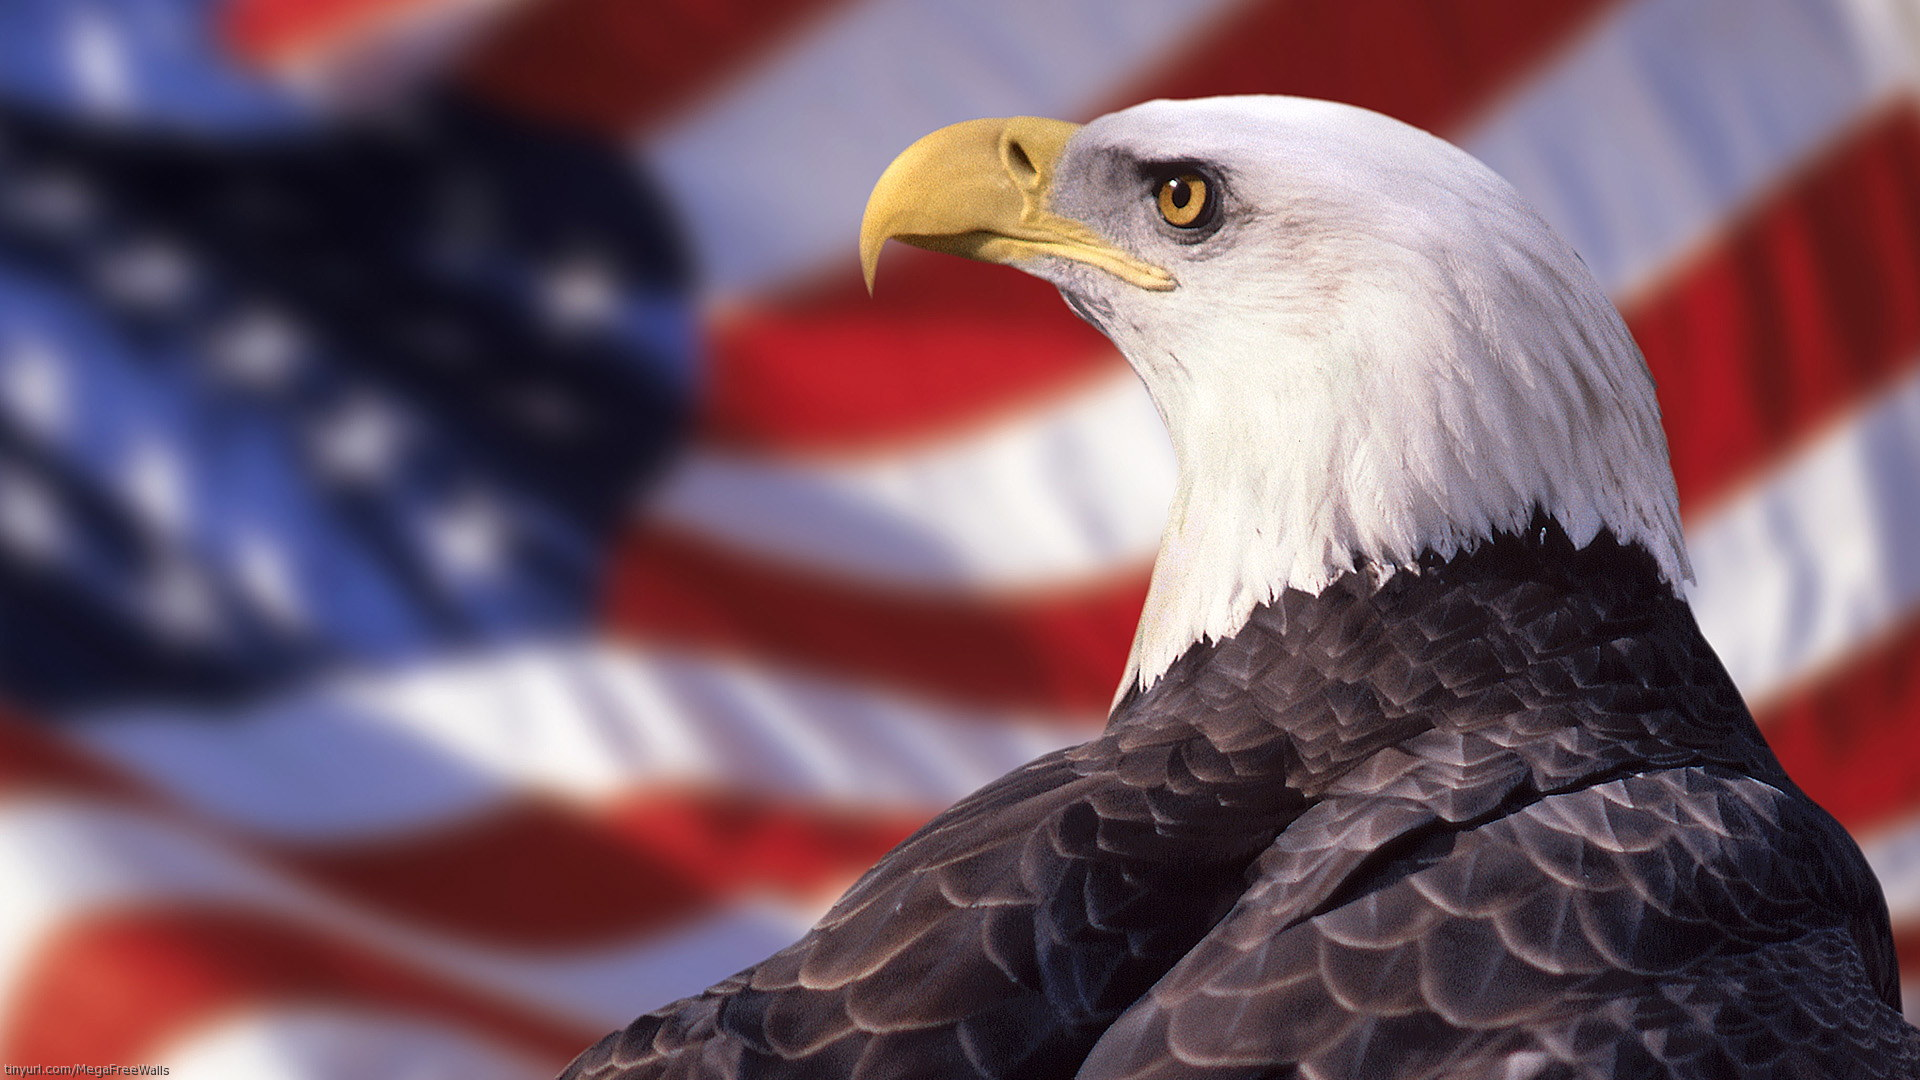 Bald Eagle Wallpaper 1920x1080